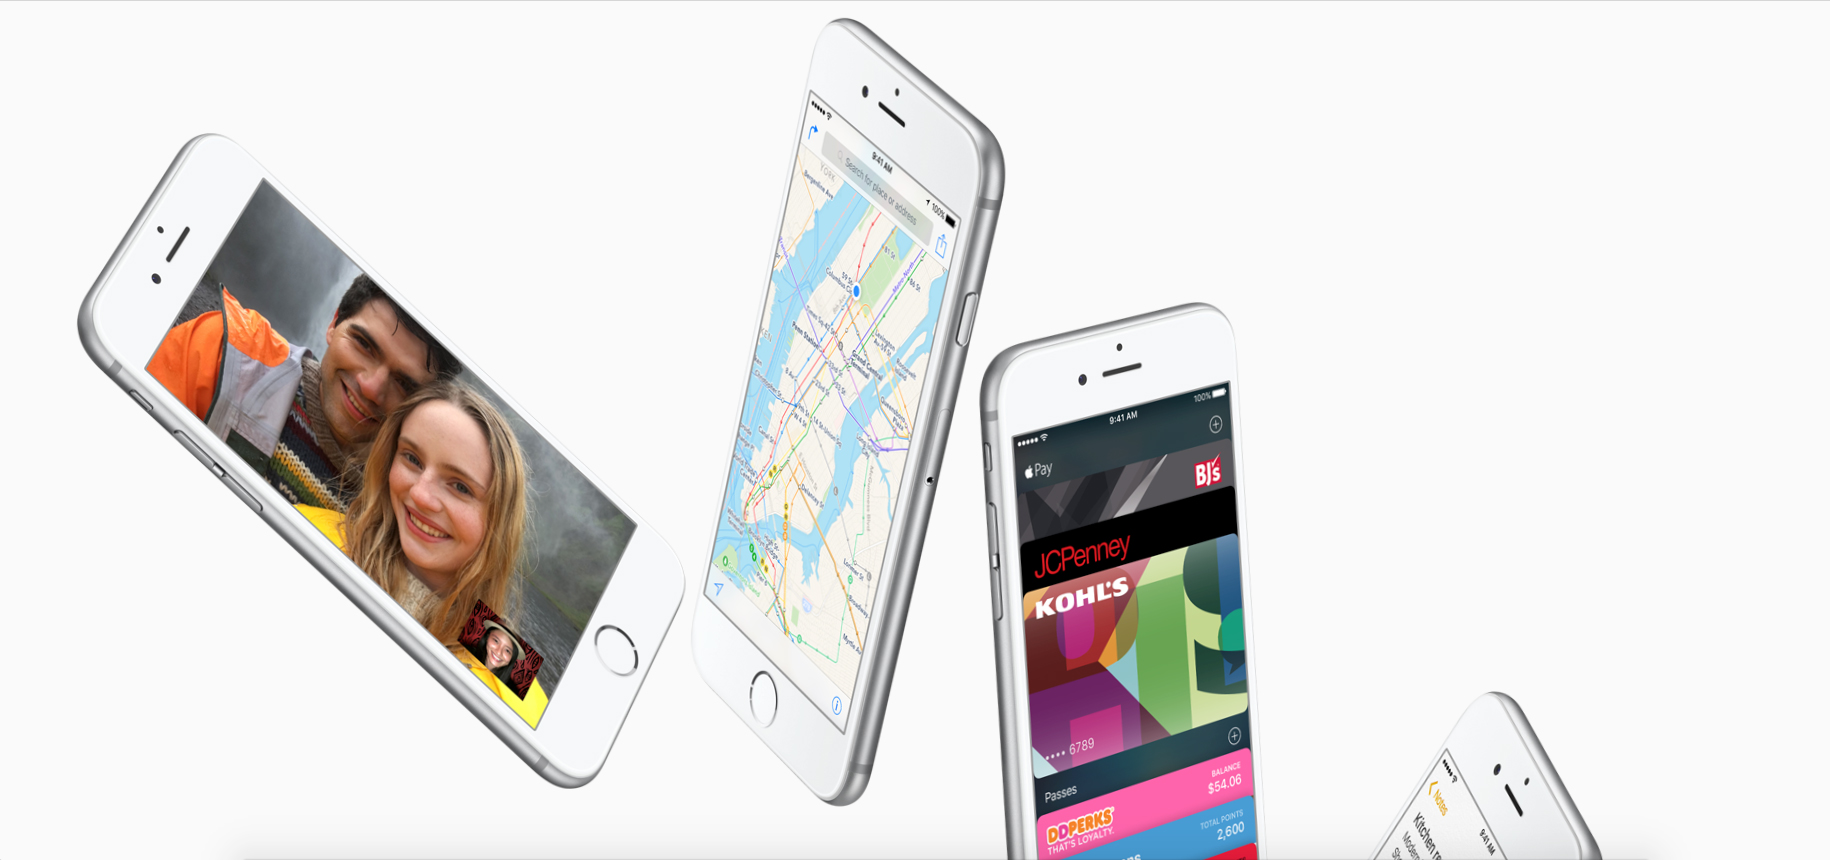 Apple releases the first beta version of iOS 9.3, WatchOS 2.2, tvOS 9.2